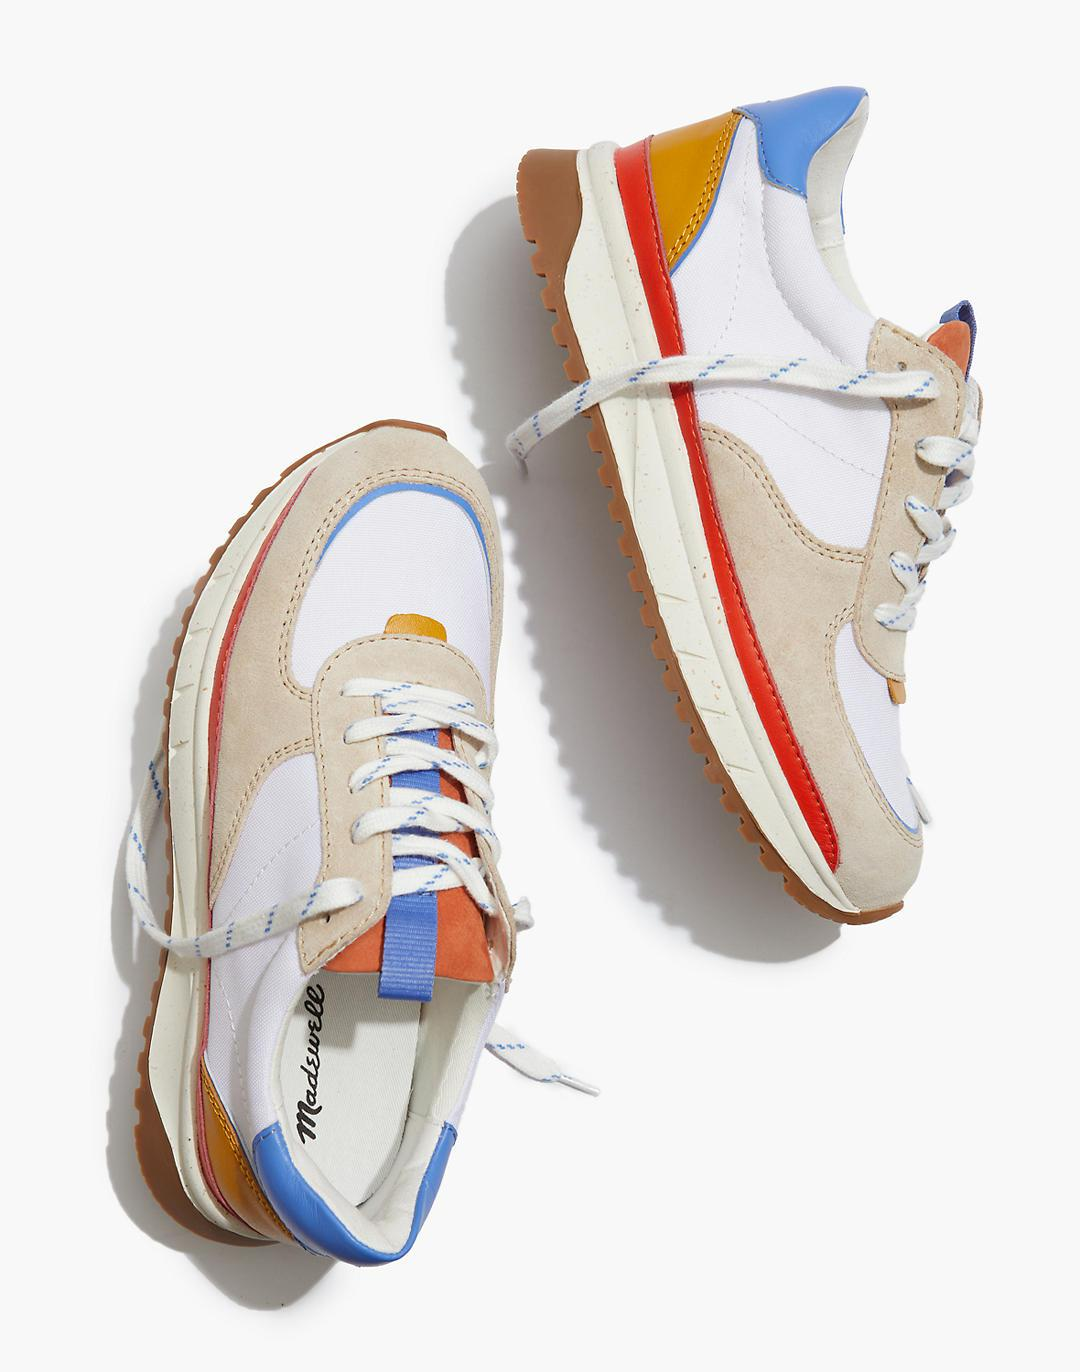 Kickoff Trainer Sneakers in Recycled Nylon, Suede and Leather